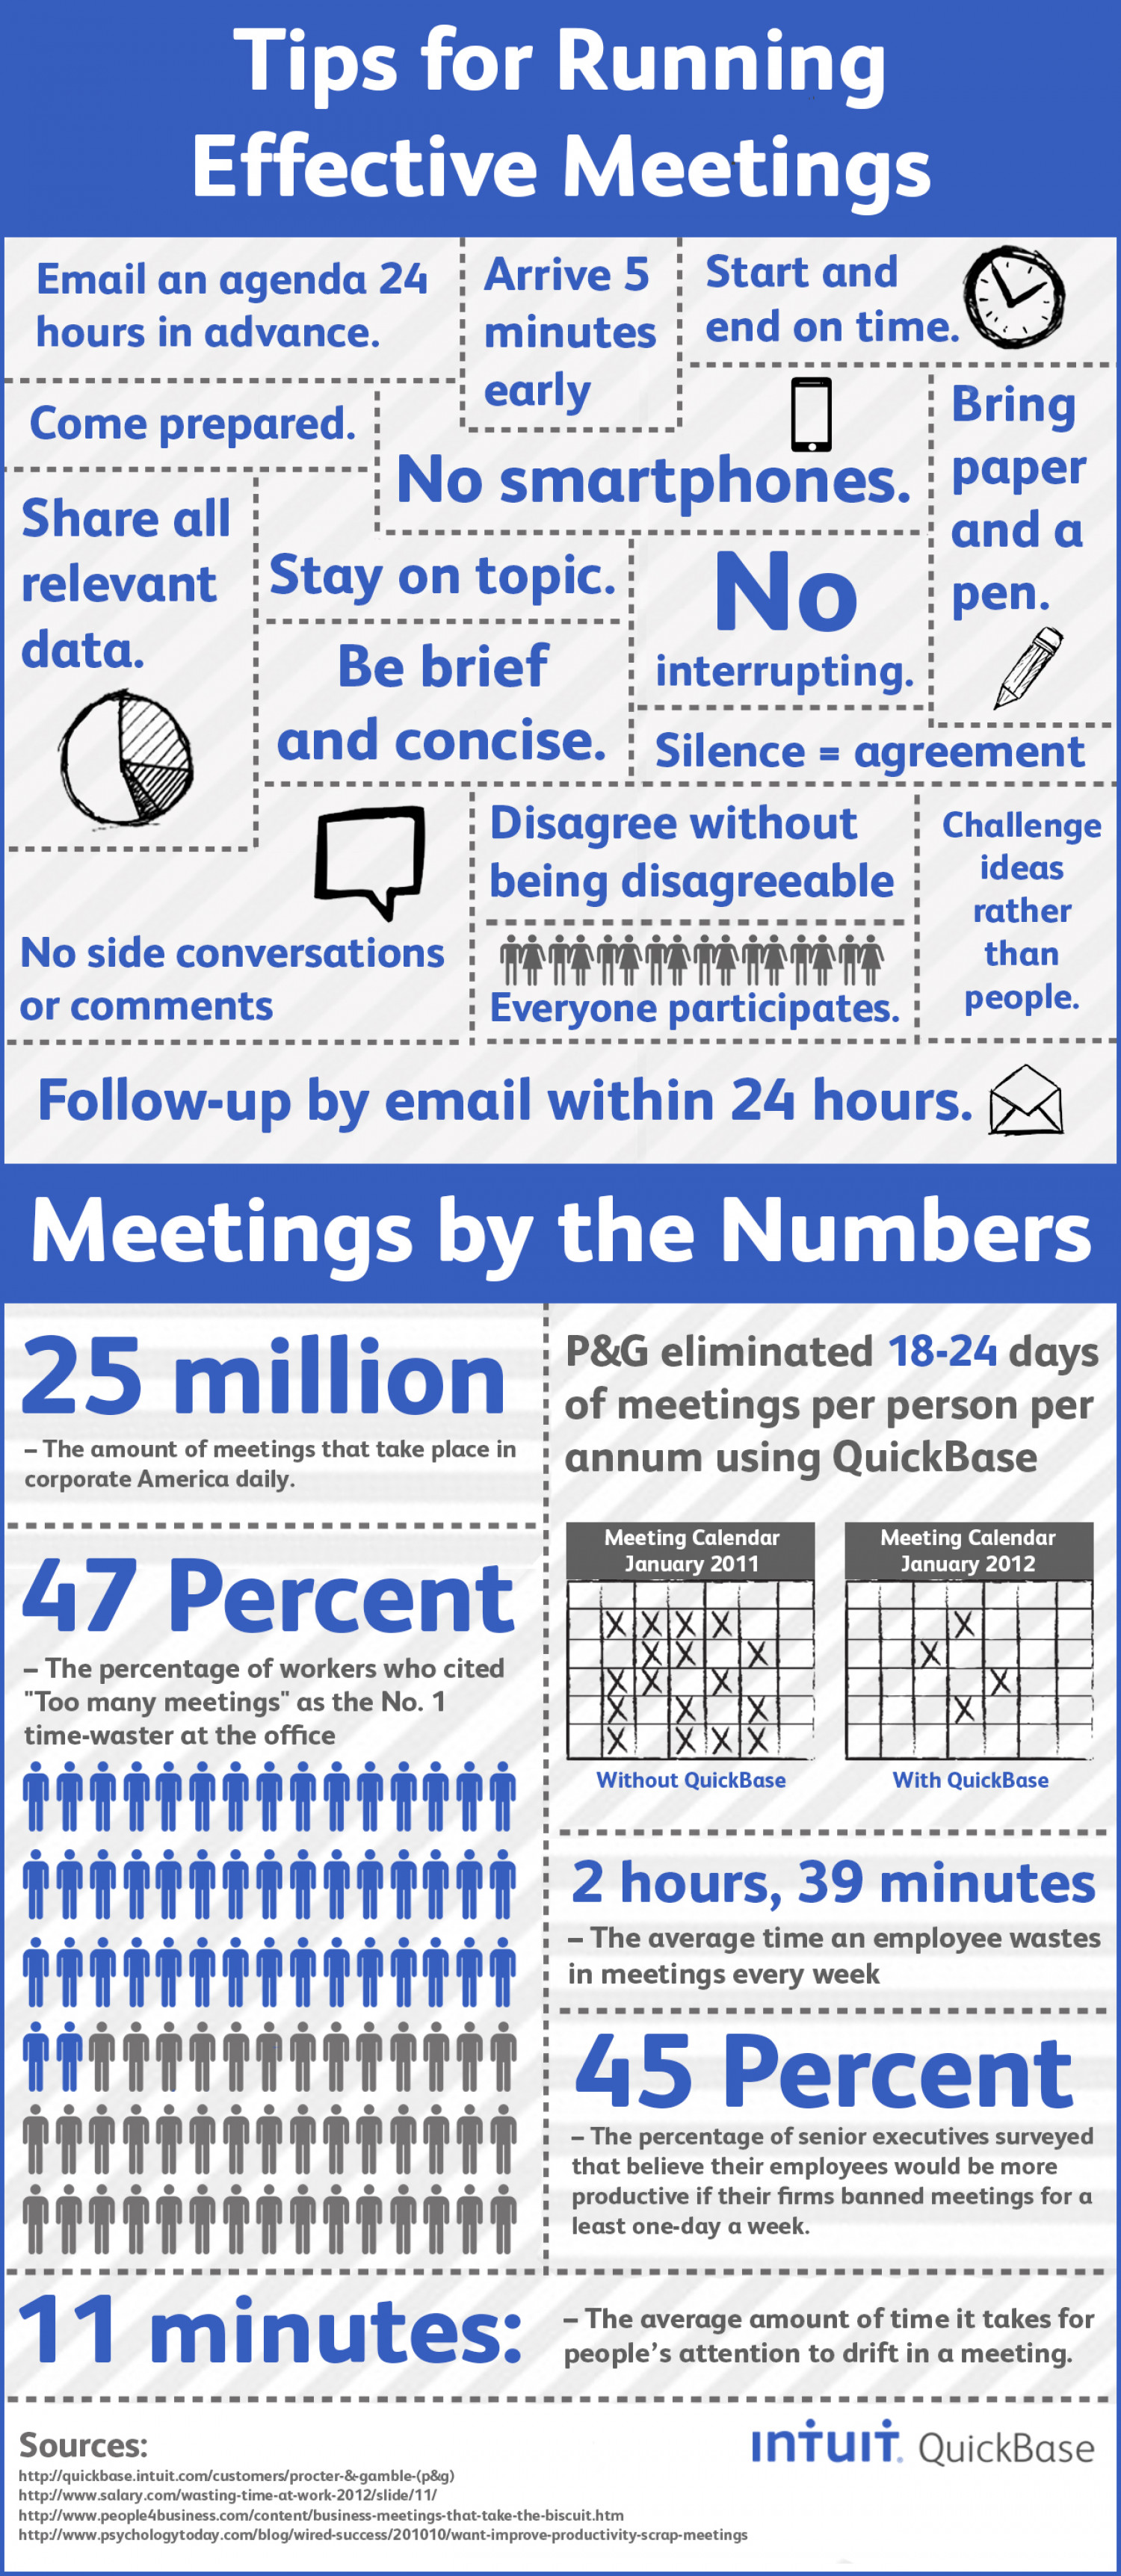 Tips for Running Effective Meetings Infographic